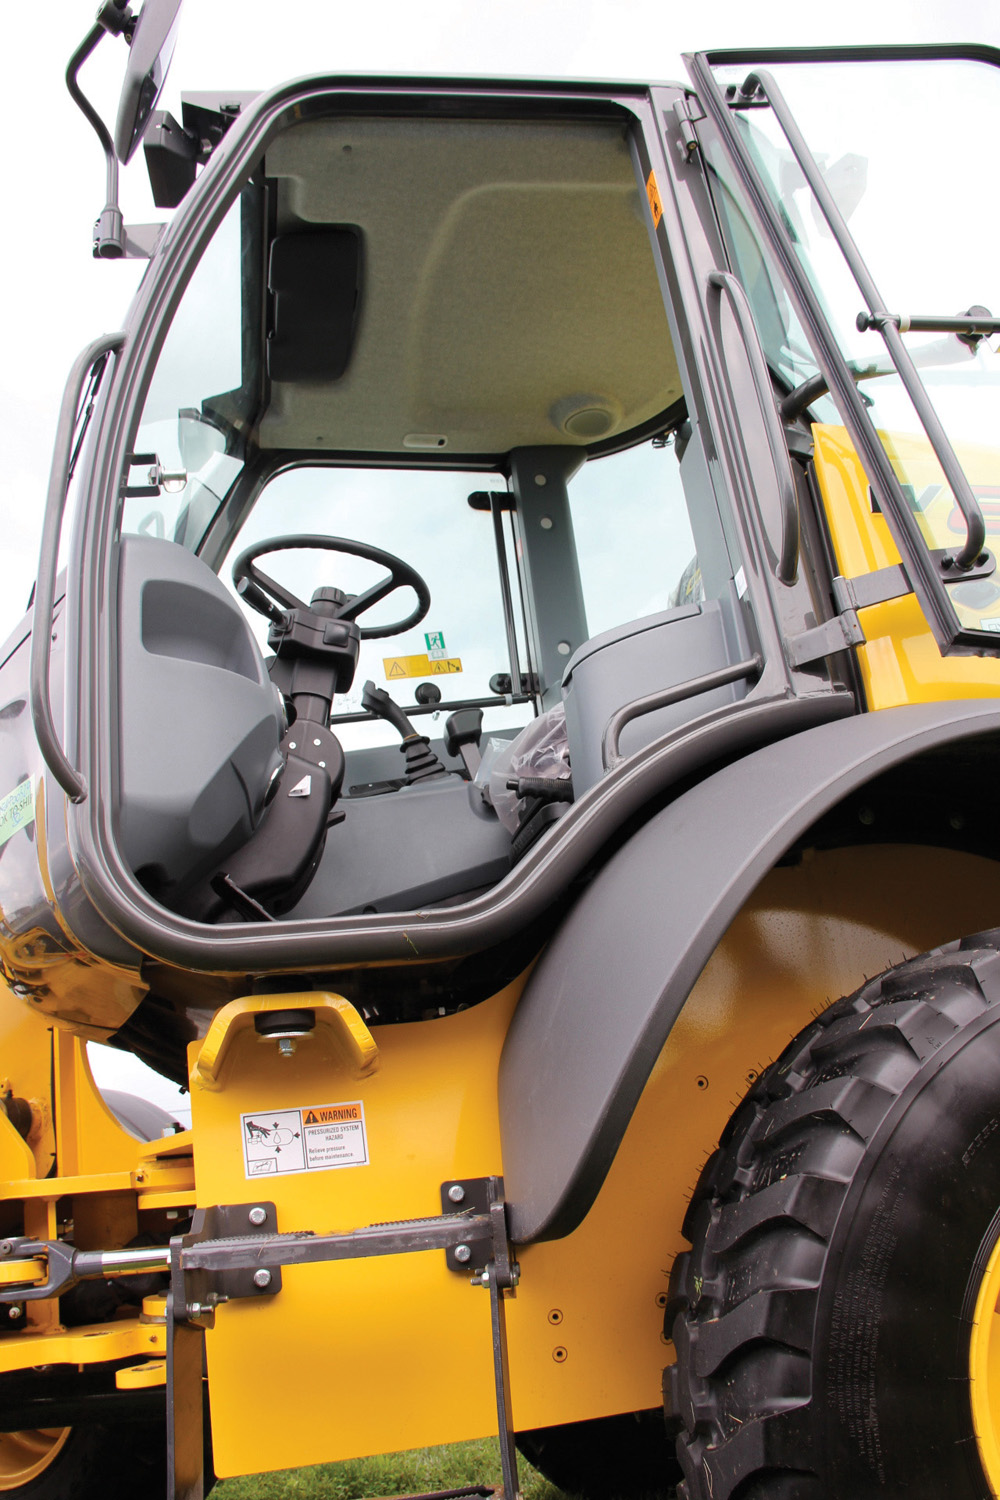 Even though the C Series loaders were re-engineered to be more compact, they still offer a relatively spacious cab.